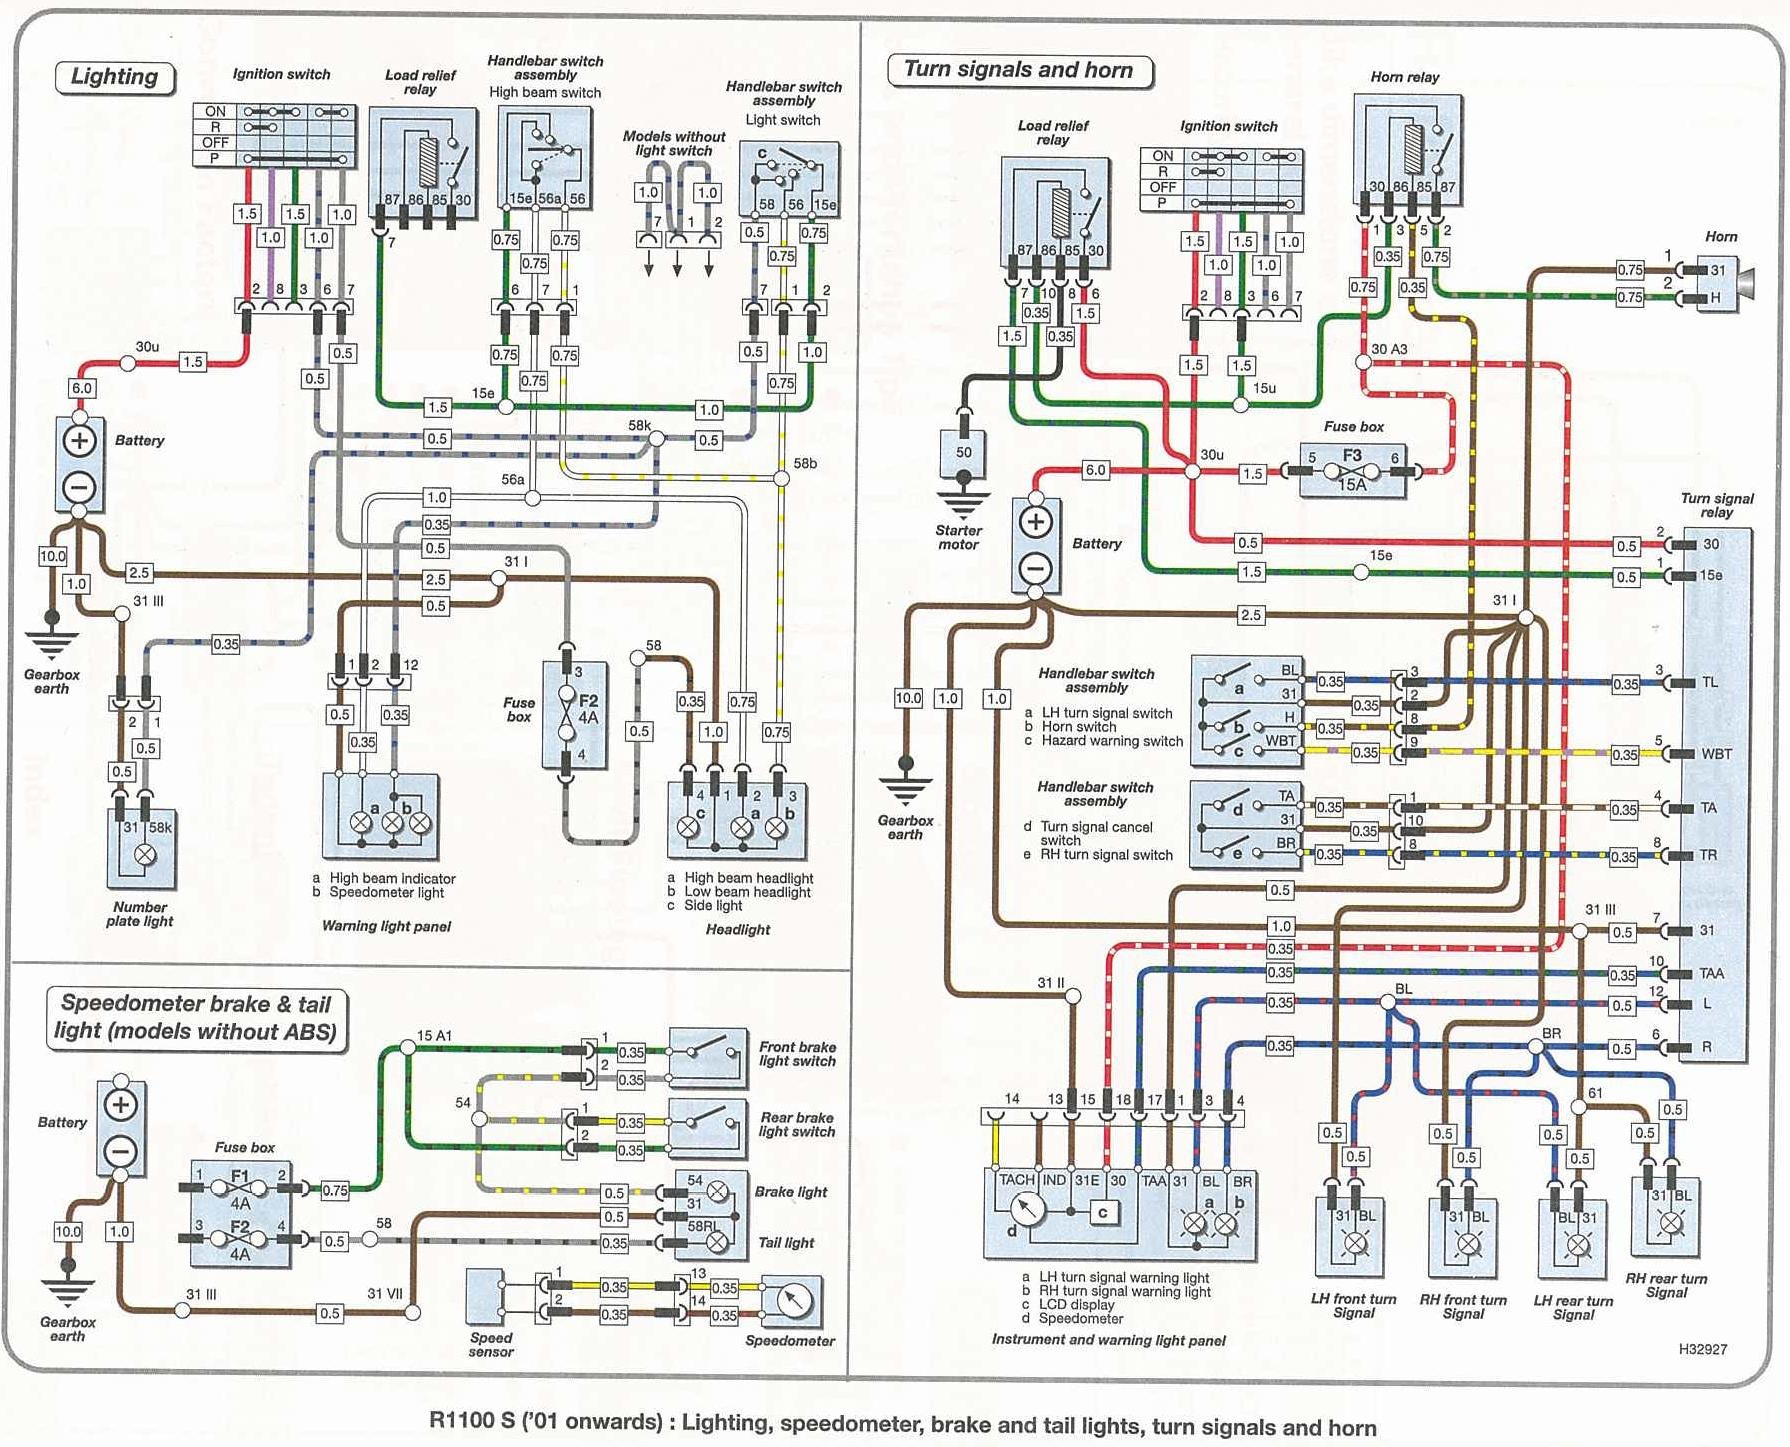 wiring06 bmw r1100s wiring diagrams bmw r1100r wiring diagram at gsmportal.co